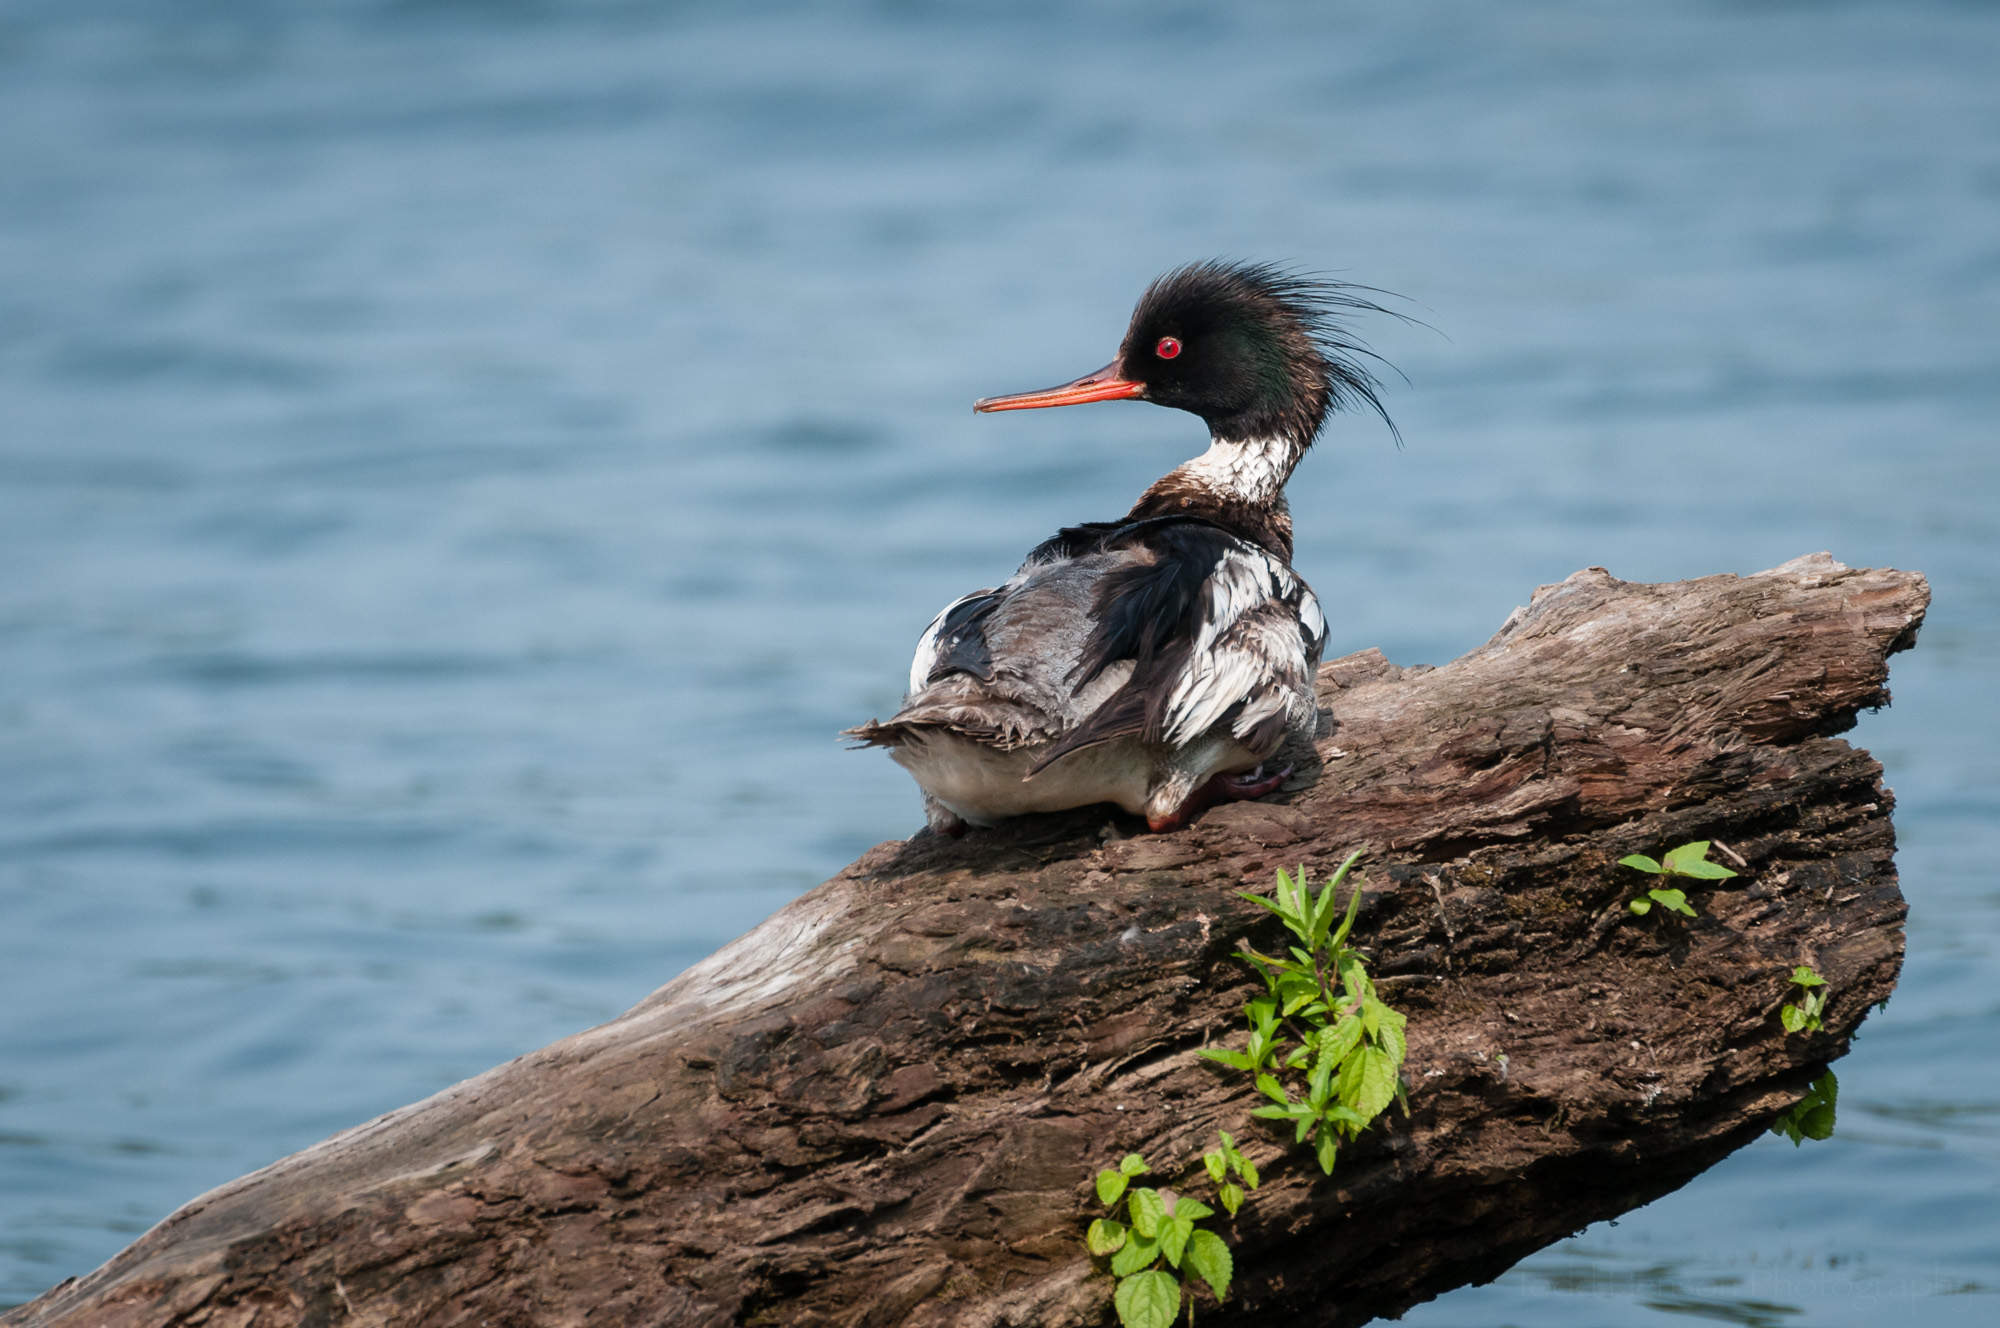 Summer Merganser #2  (2010) (available for  purchase as a fine art print or on a variety of products )